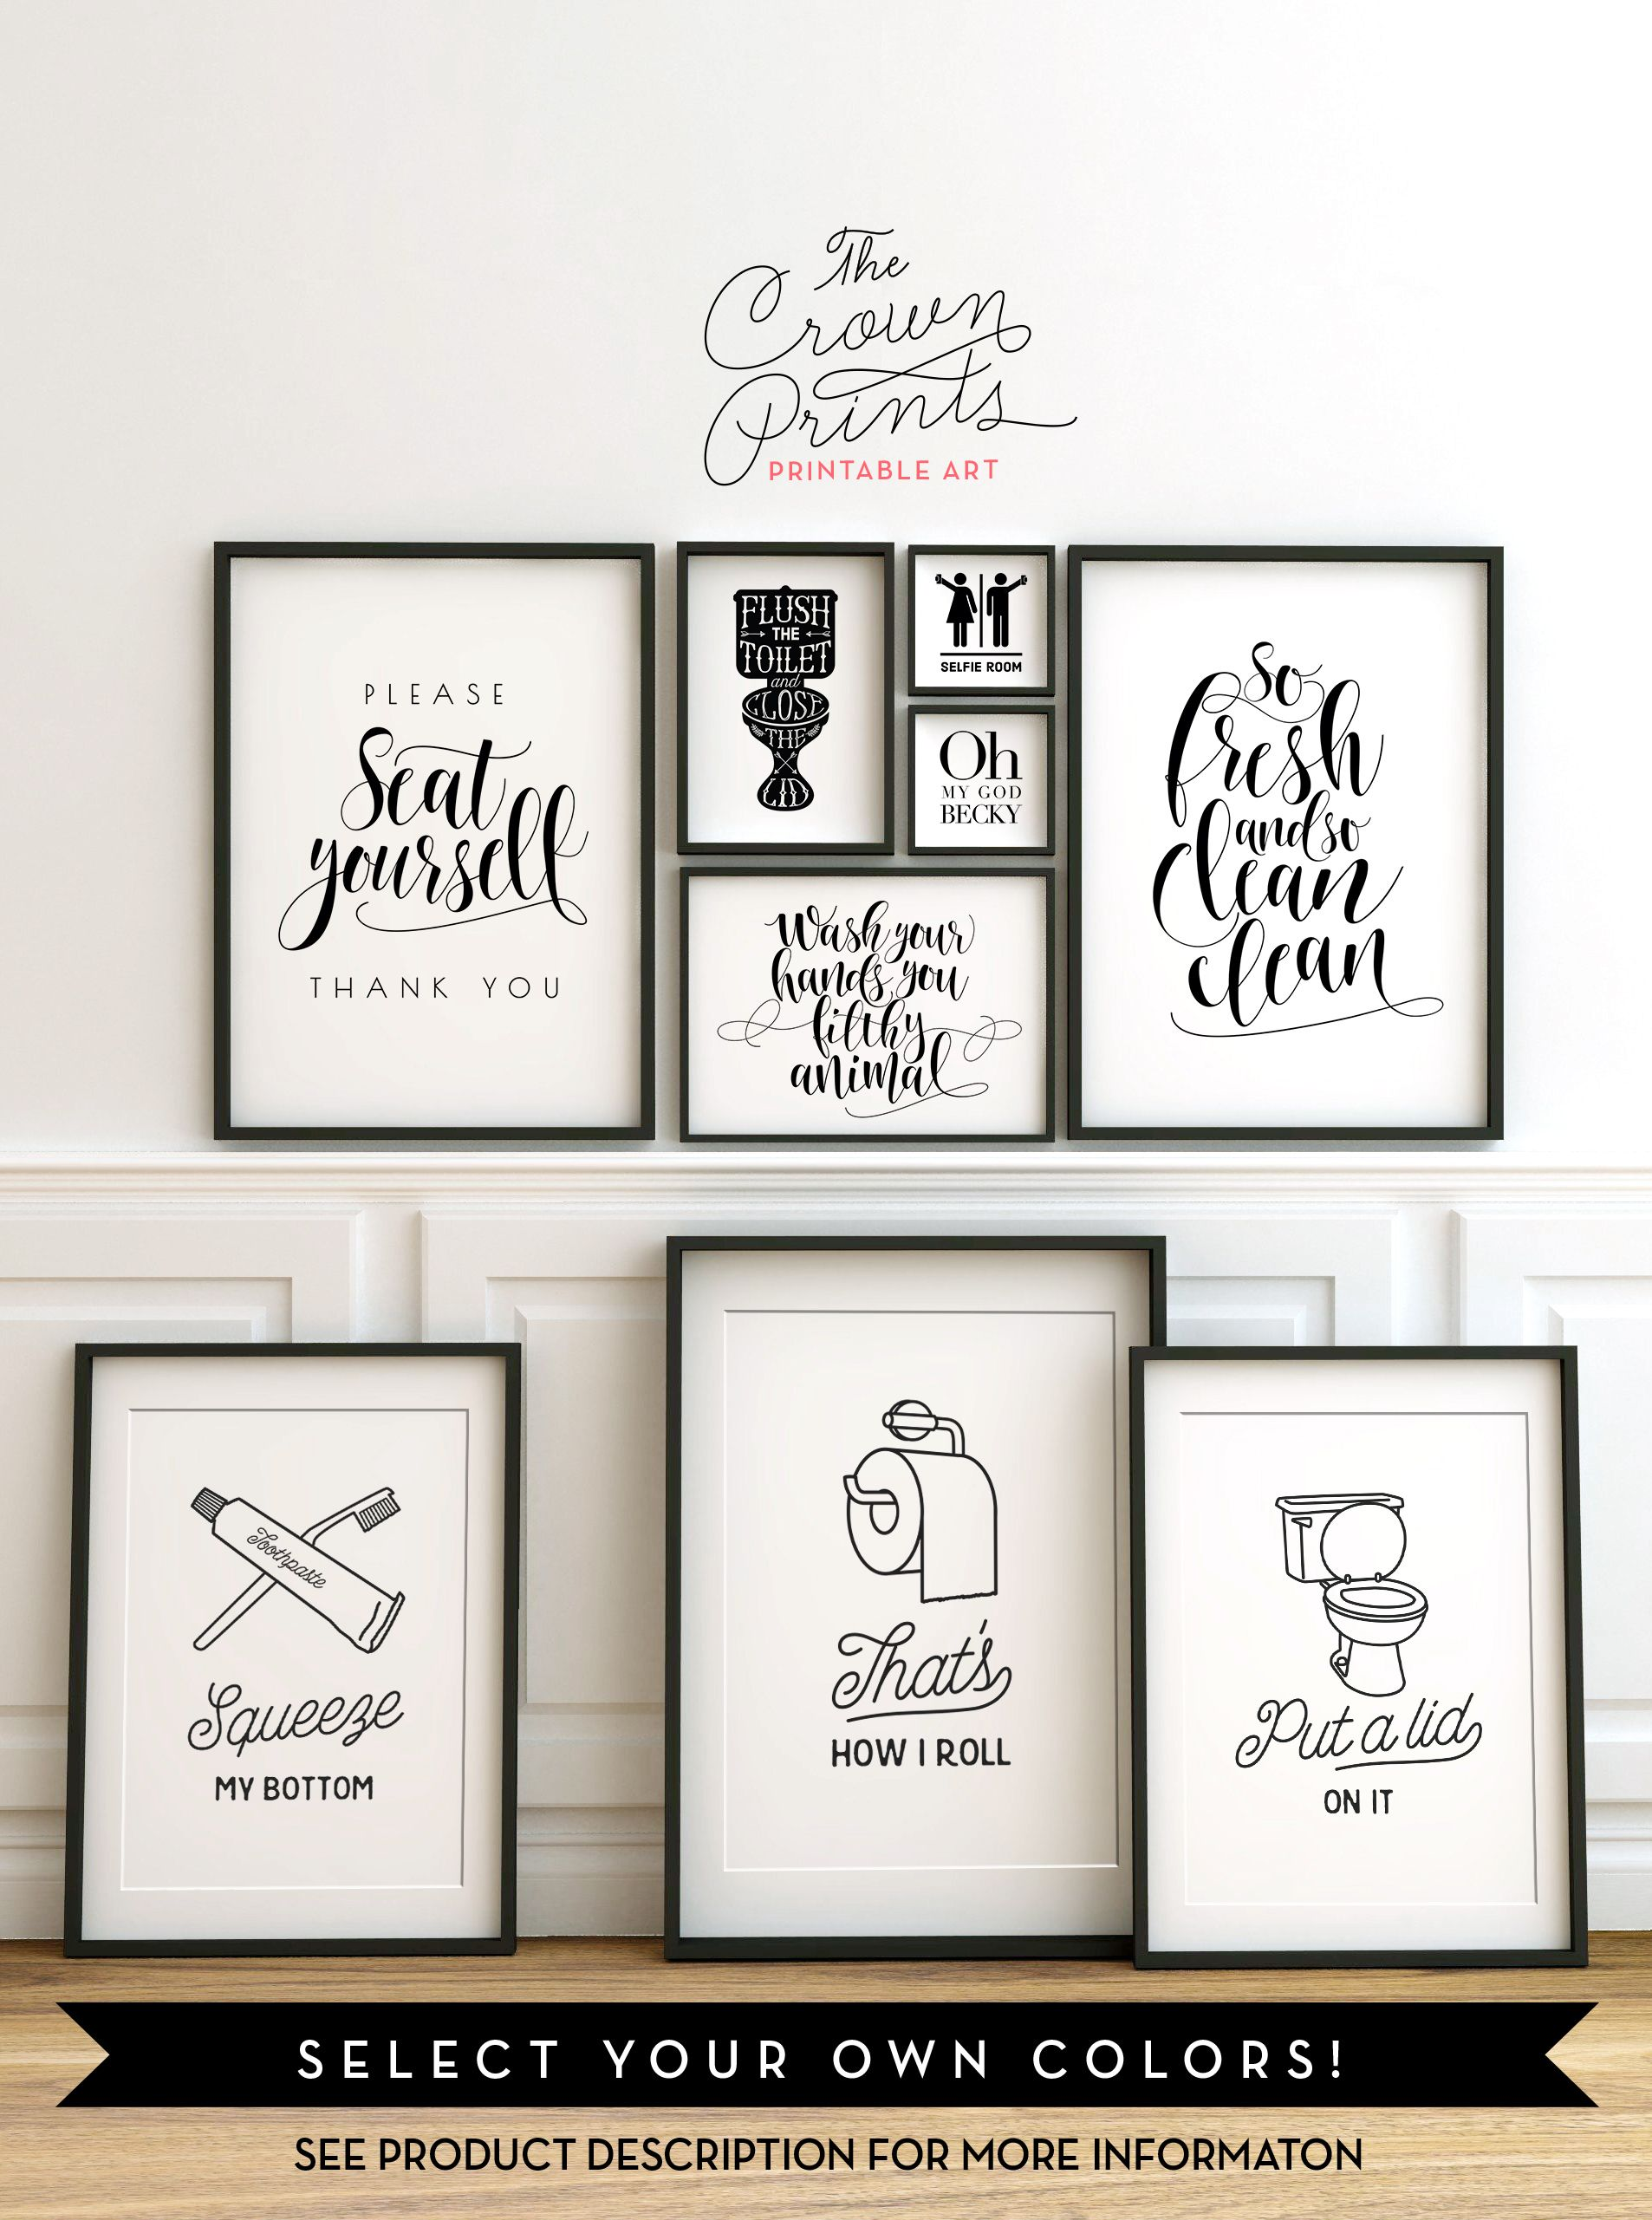 Printable Bathroom Wall Art From The Crown Prints On Etsy